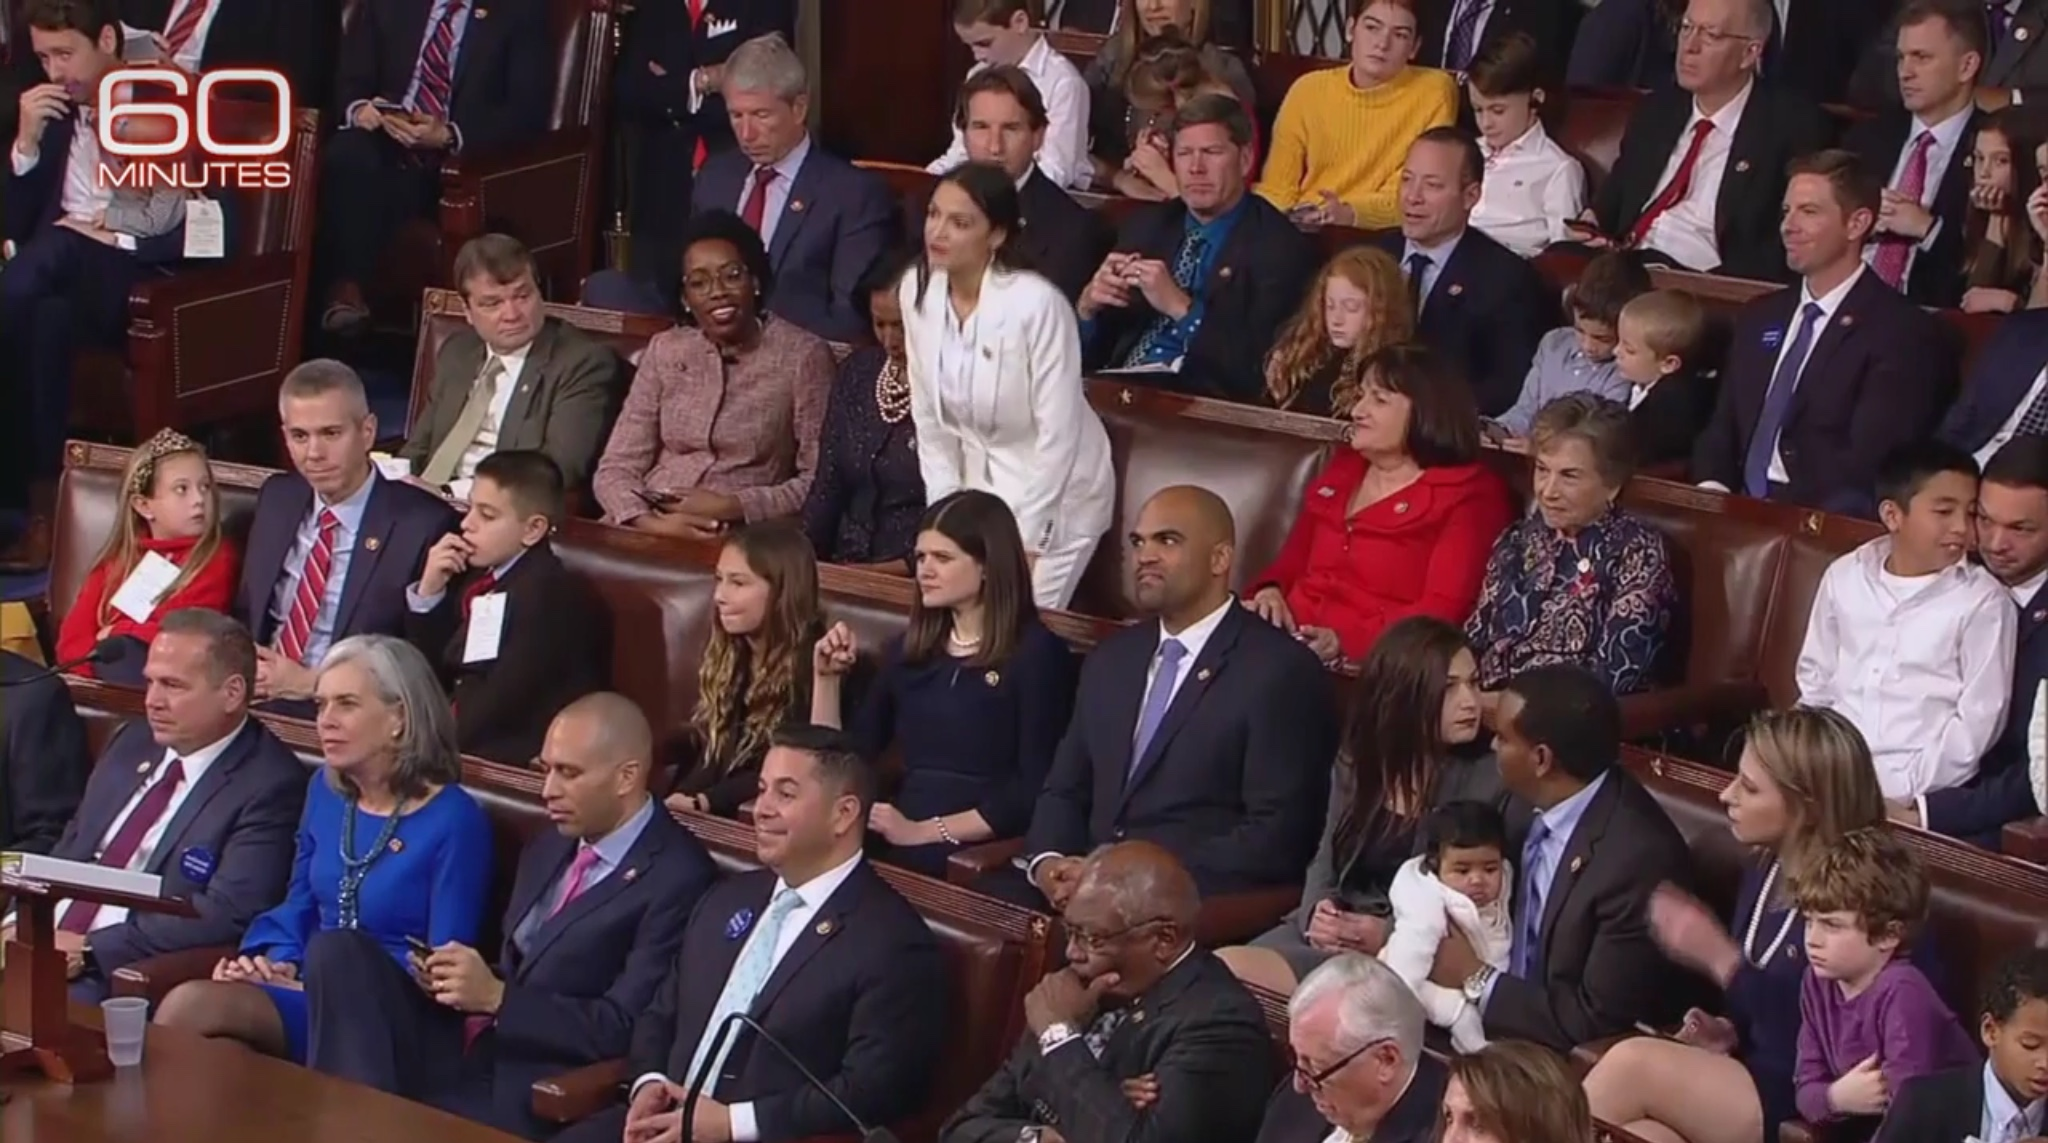 New York Democratic Rep. Alexandria Ocasio-Cortez takes her seat in the House of Representatives. CBS Screenshot, Jan. 6, 2019